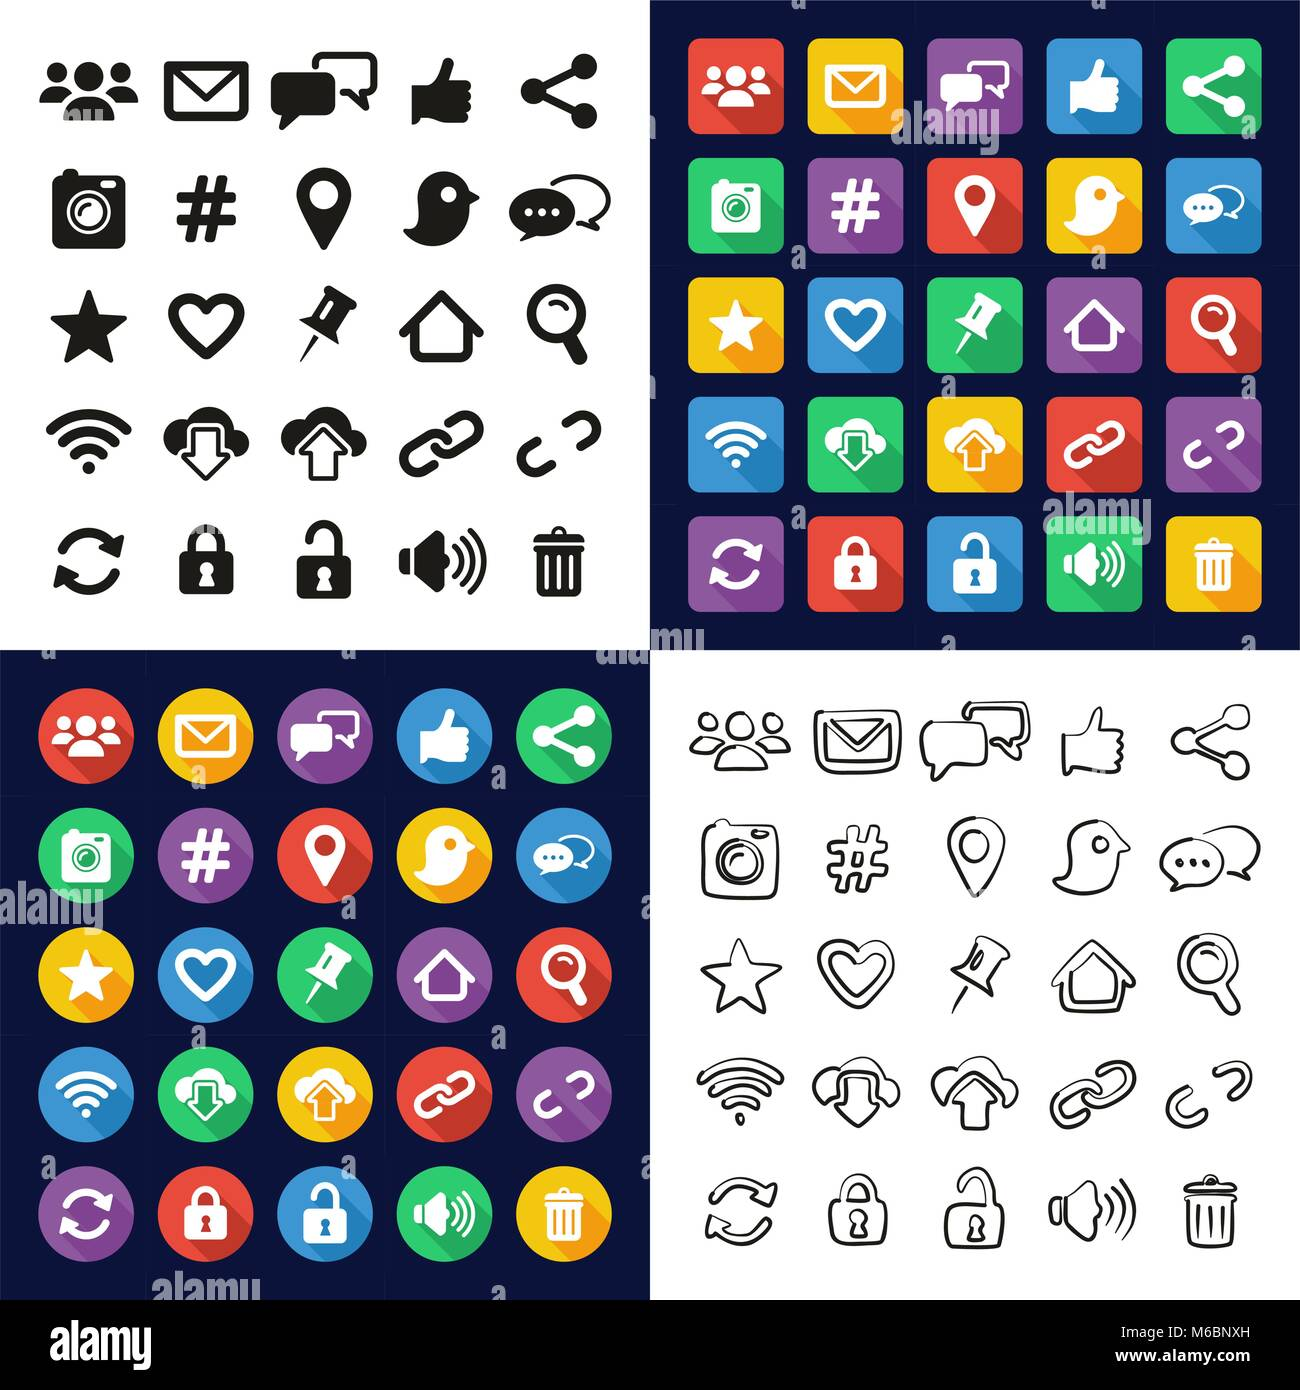 Social Media All In One Icons Black White Color Flat Design Stock Vector Image Art Alamy